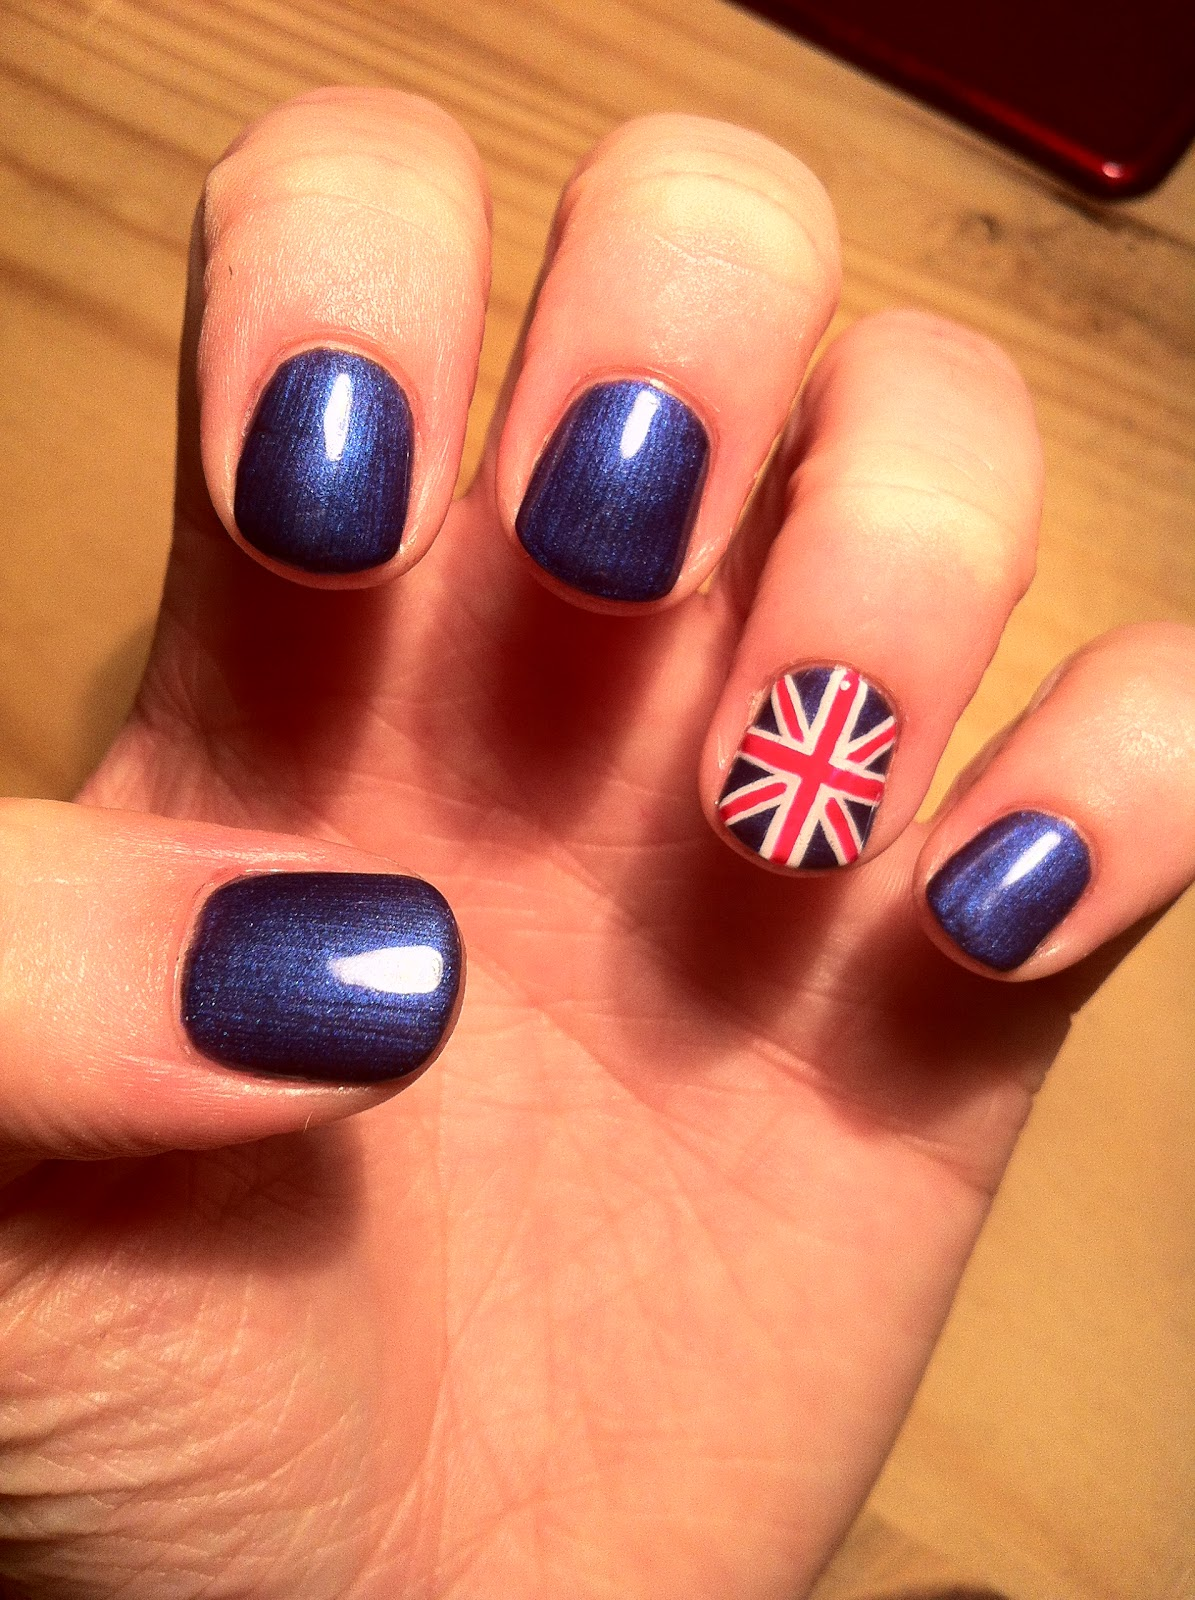 Nail design union union jack nails nail art gallery union jack nails nail art view images prinsesfo Gallery